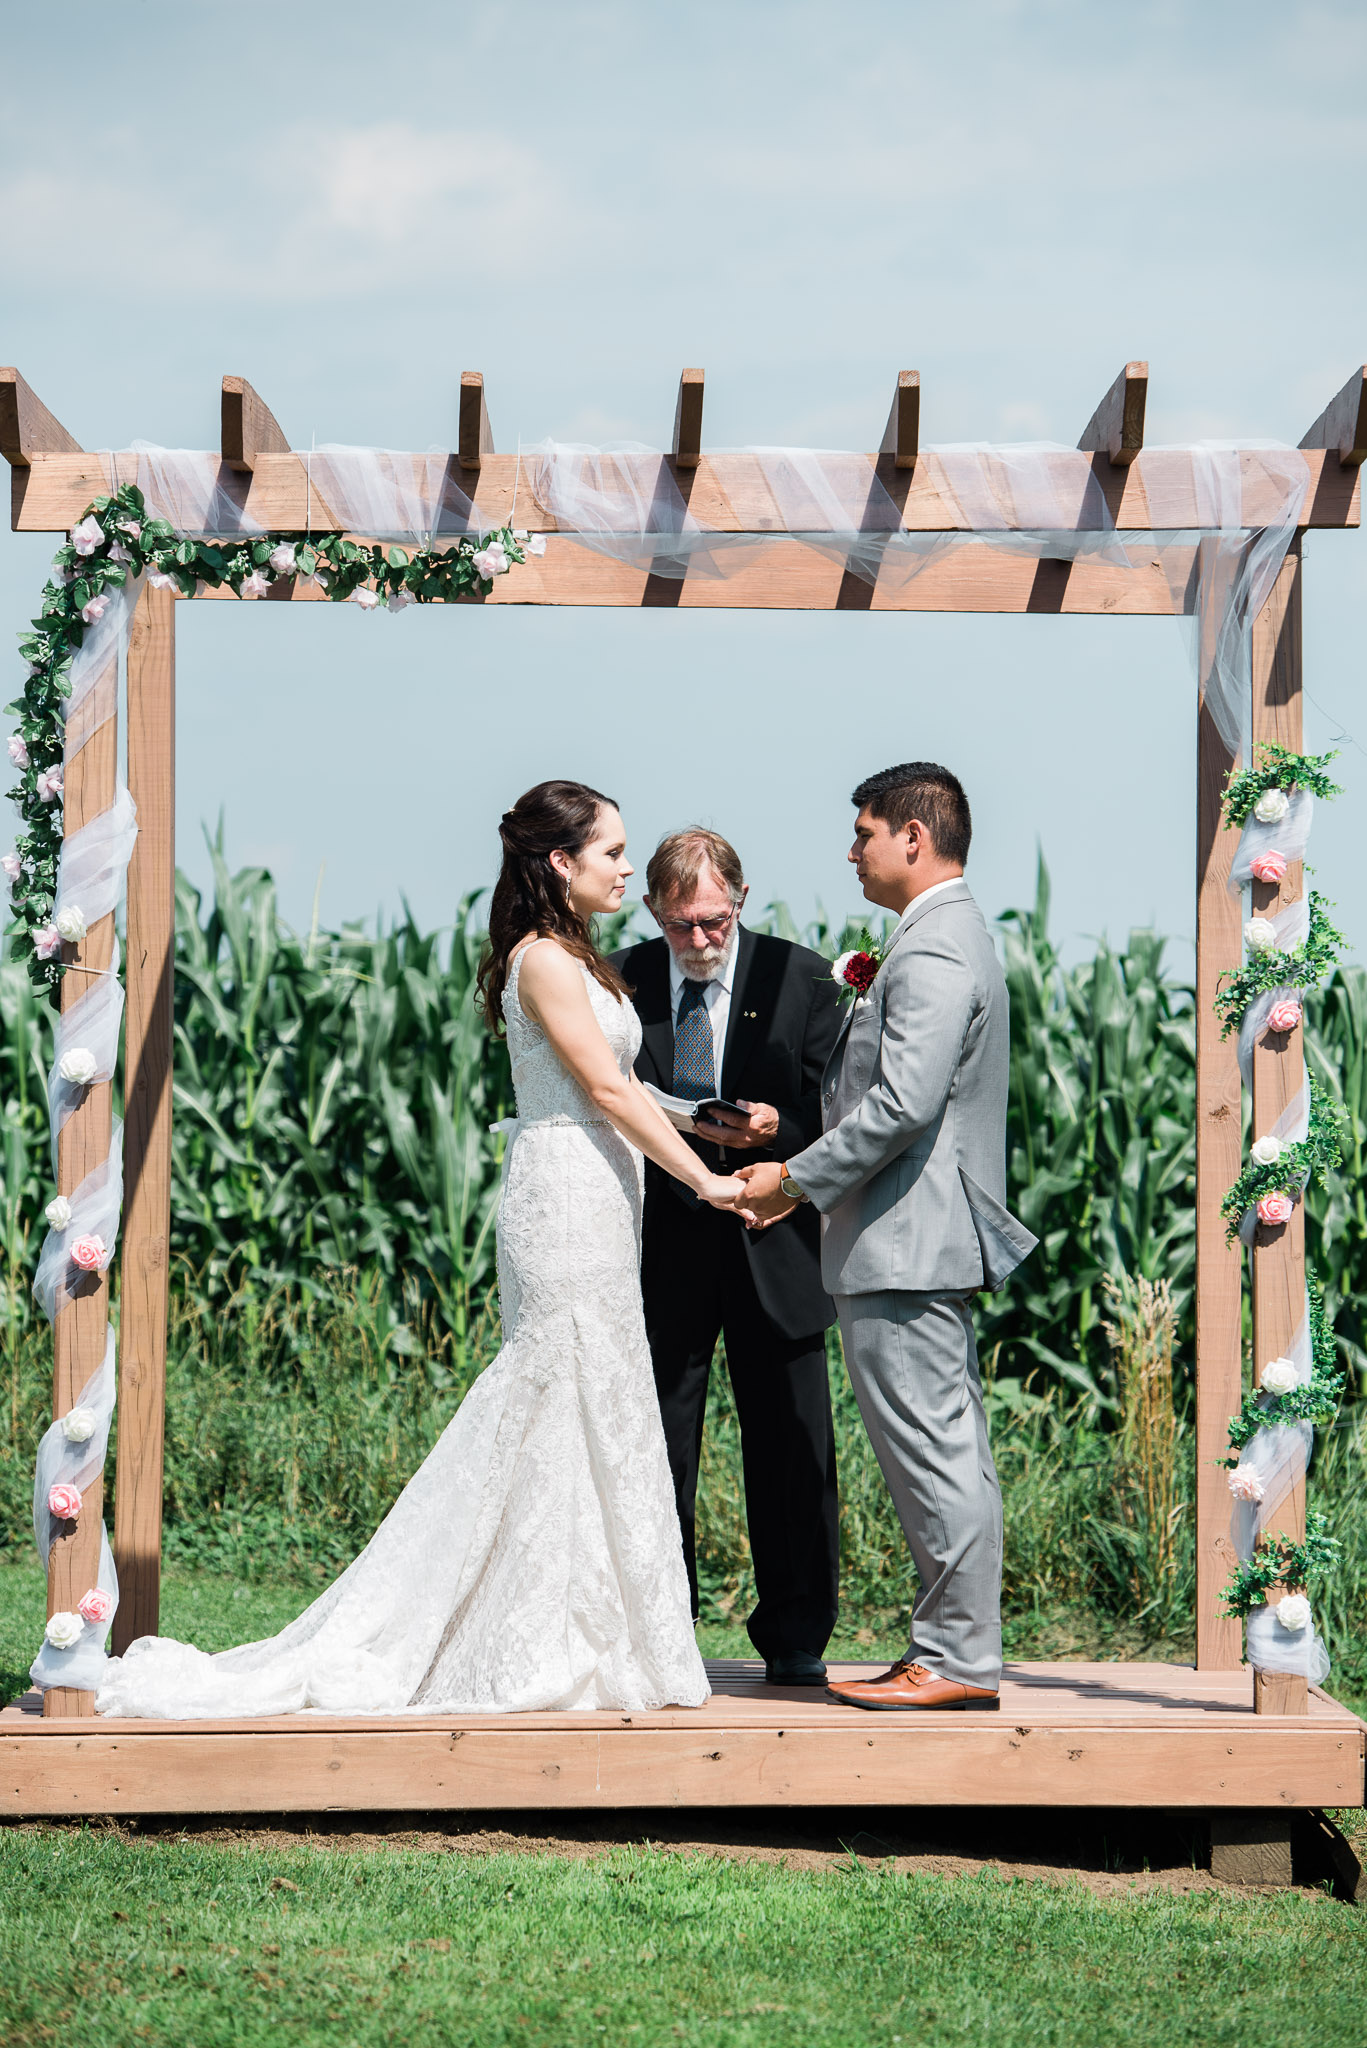 Outdoor Ceremony, Pittsburgh Wedding Photographer, The Event Barn at Highland Farms, Somerset PA-9642.jpg